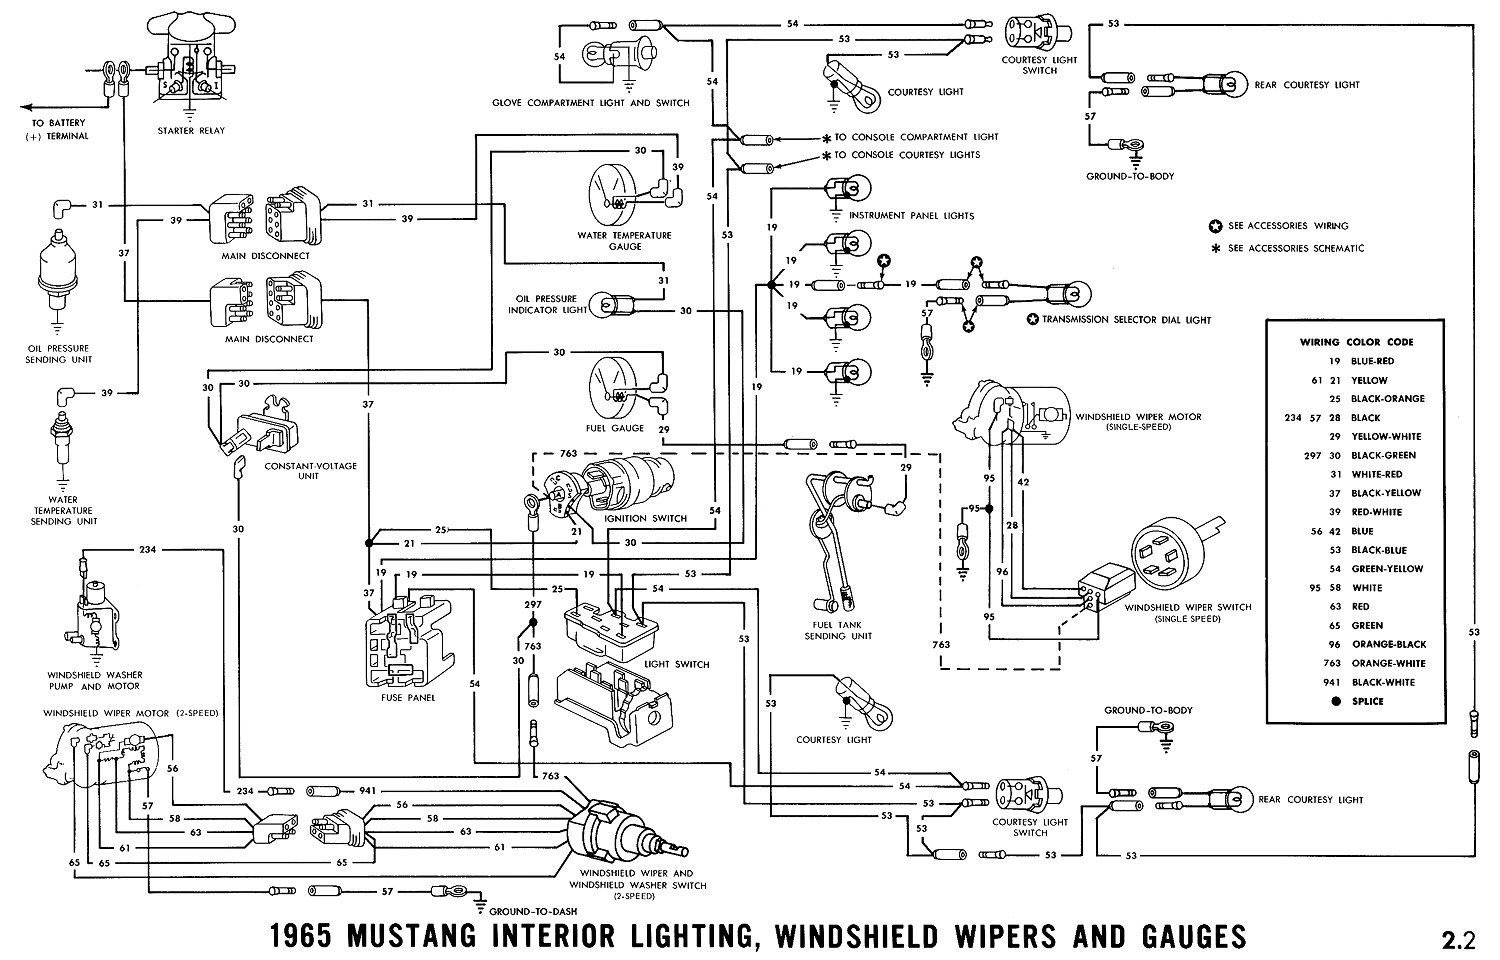 1965 Mustang Instrument Panel Wiring Diagram Opinions About 95 Gt Fuse Engine Diagrams Average Joe Restoration Rh Averagejoerestoration Com Cluster Taillight